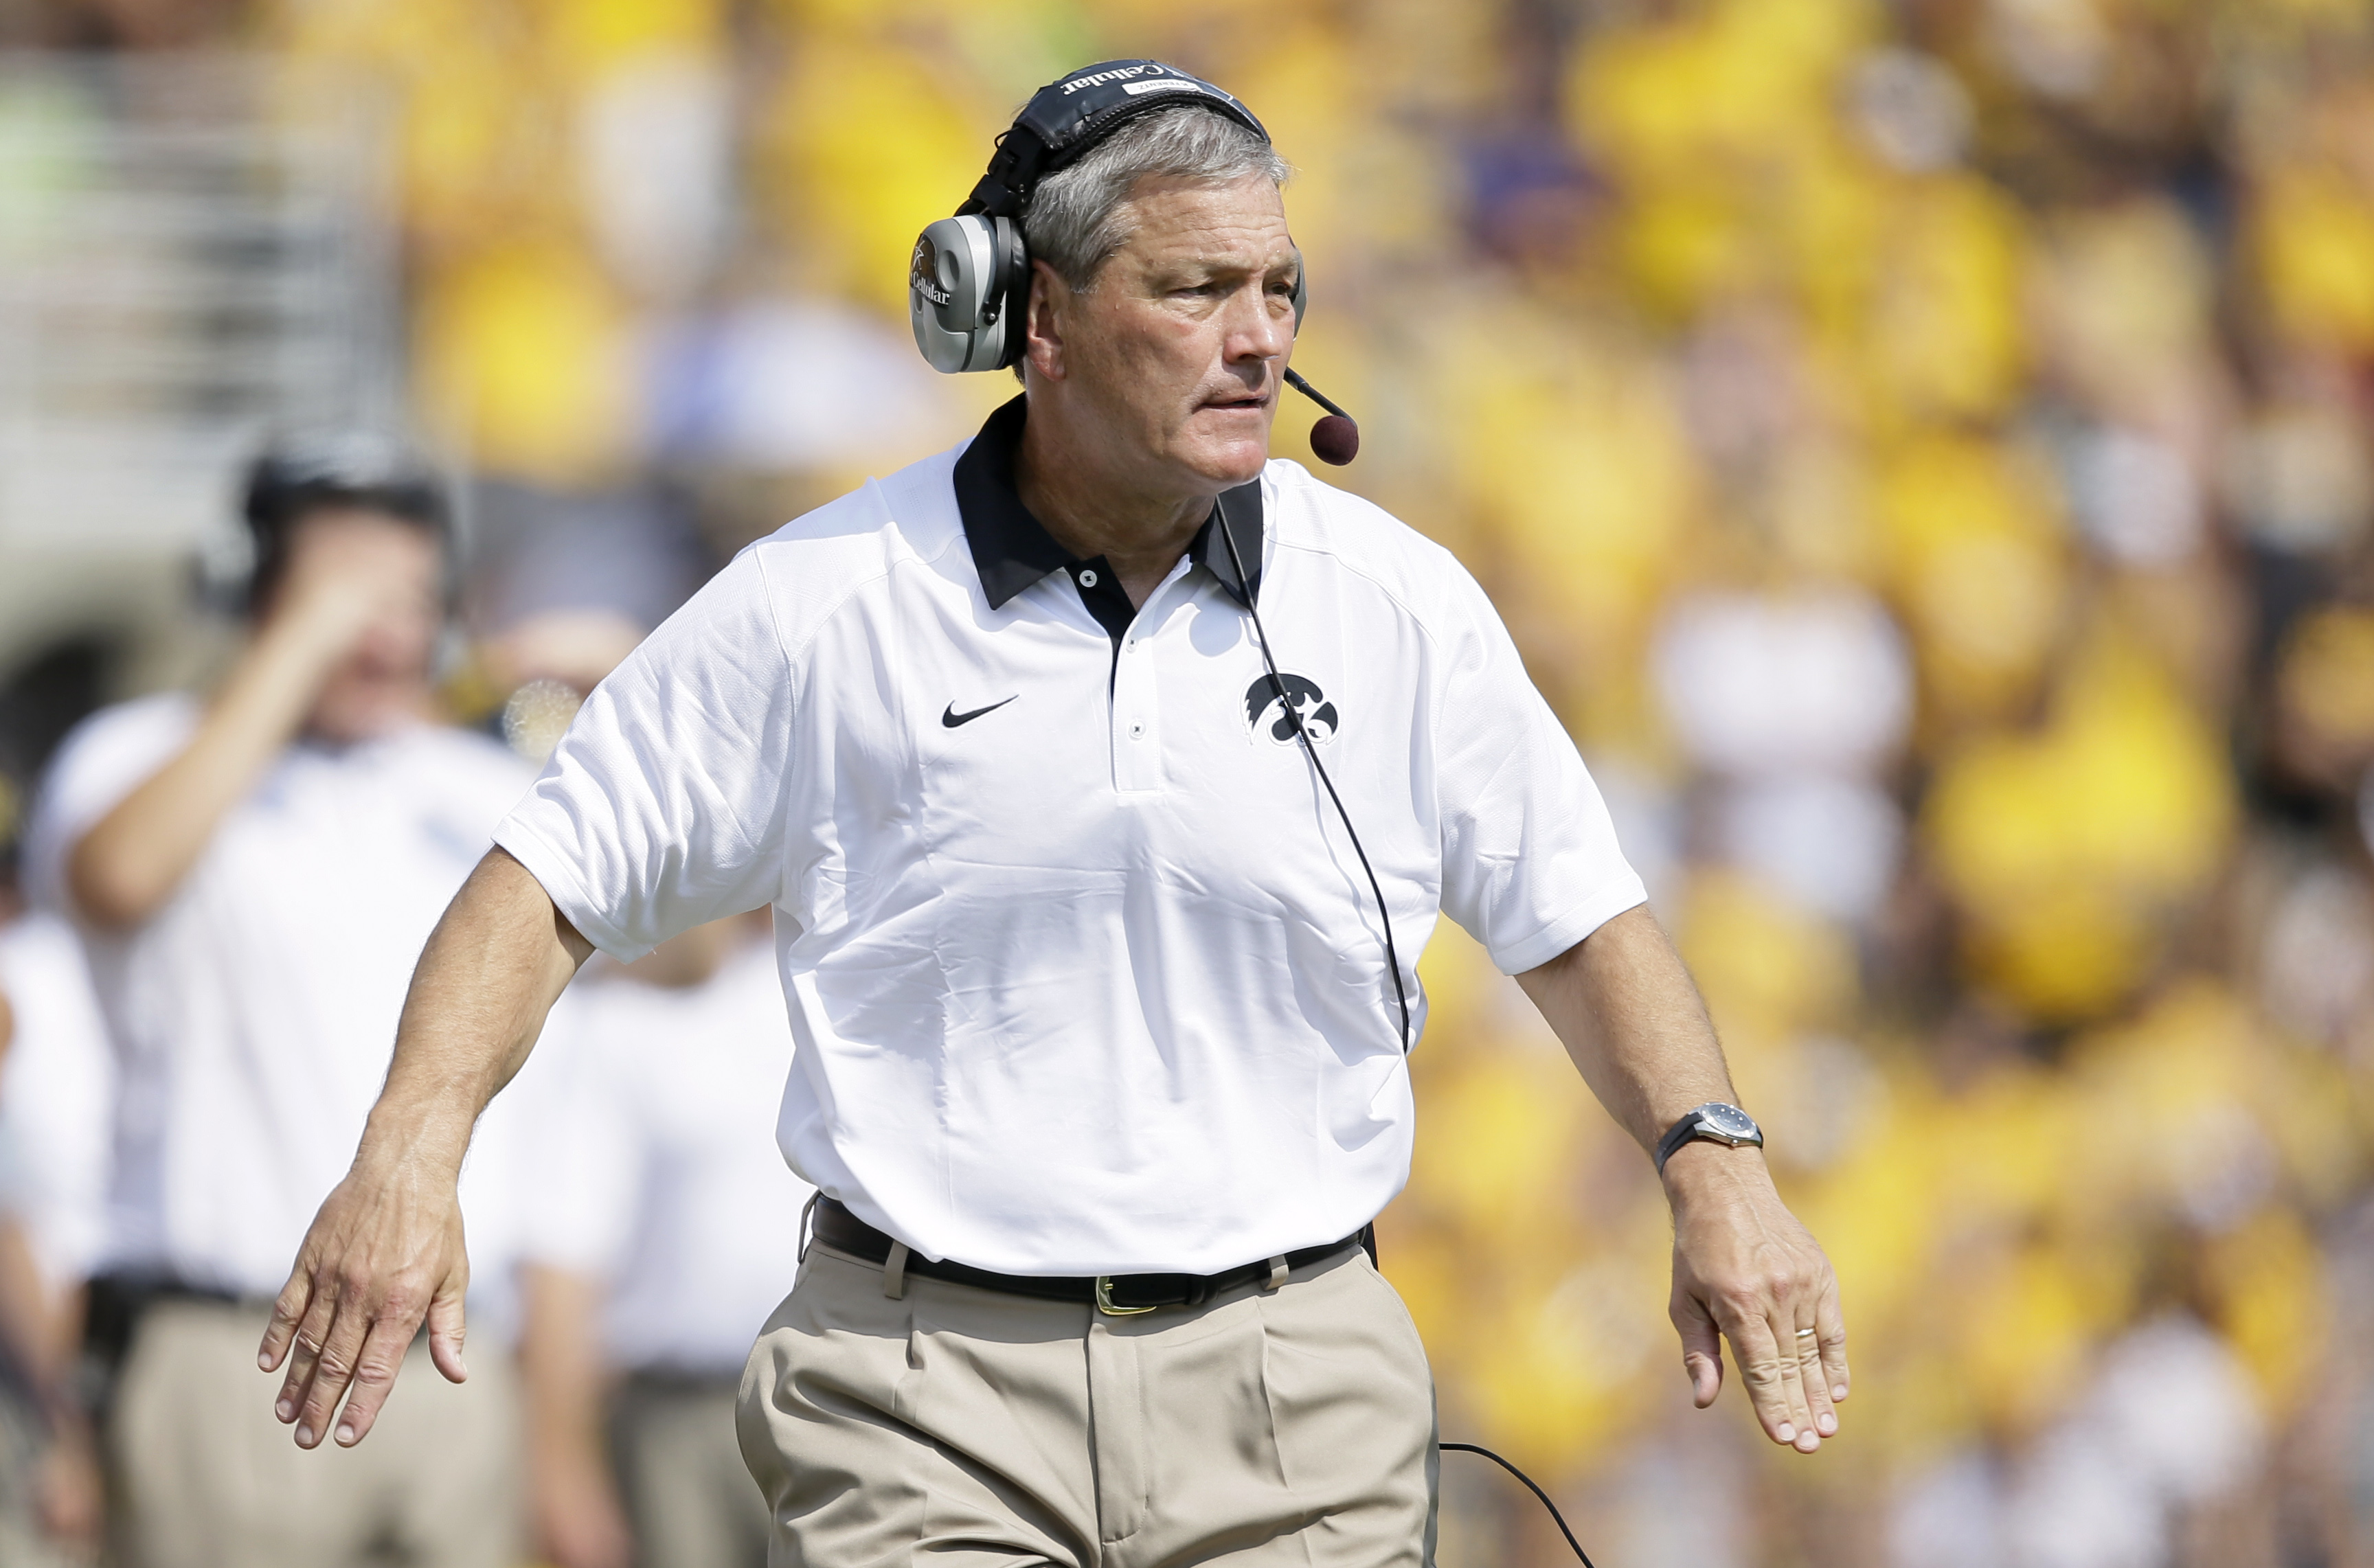 Iowa head coach Kirk Ferentz reacts on the sidelines during the first half of an NCAA college football game against Illinois State, Saturday, Sept. 5, 2015, in Iowa City, Iowa. Iowa won 31-14. (AP Photo/Charlie Neibergall)